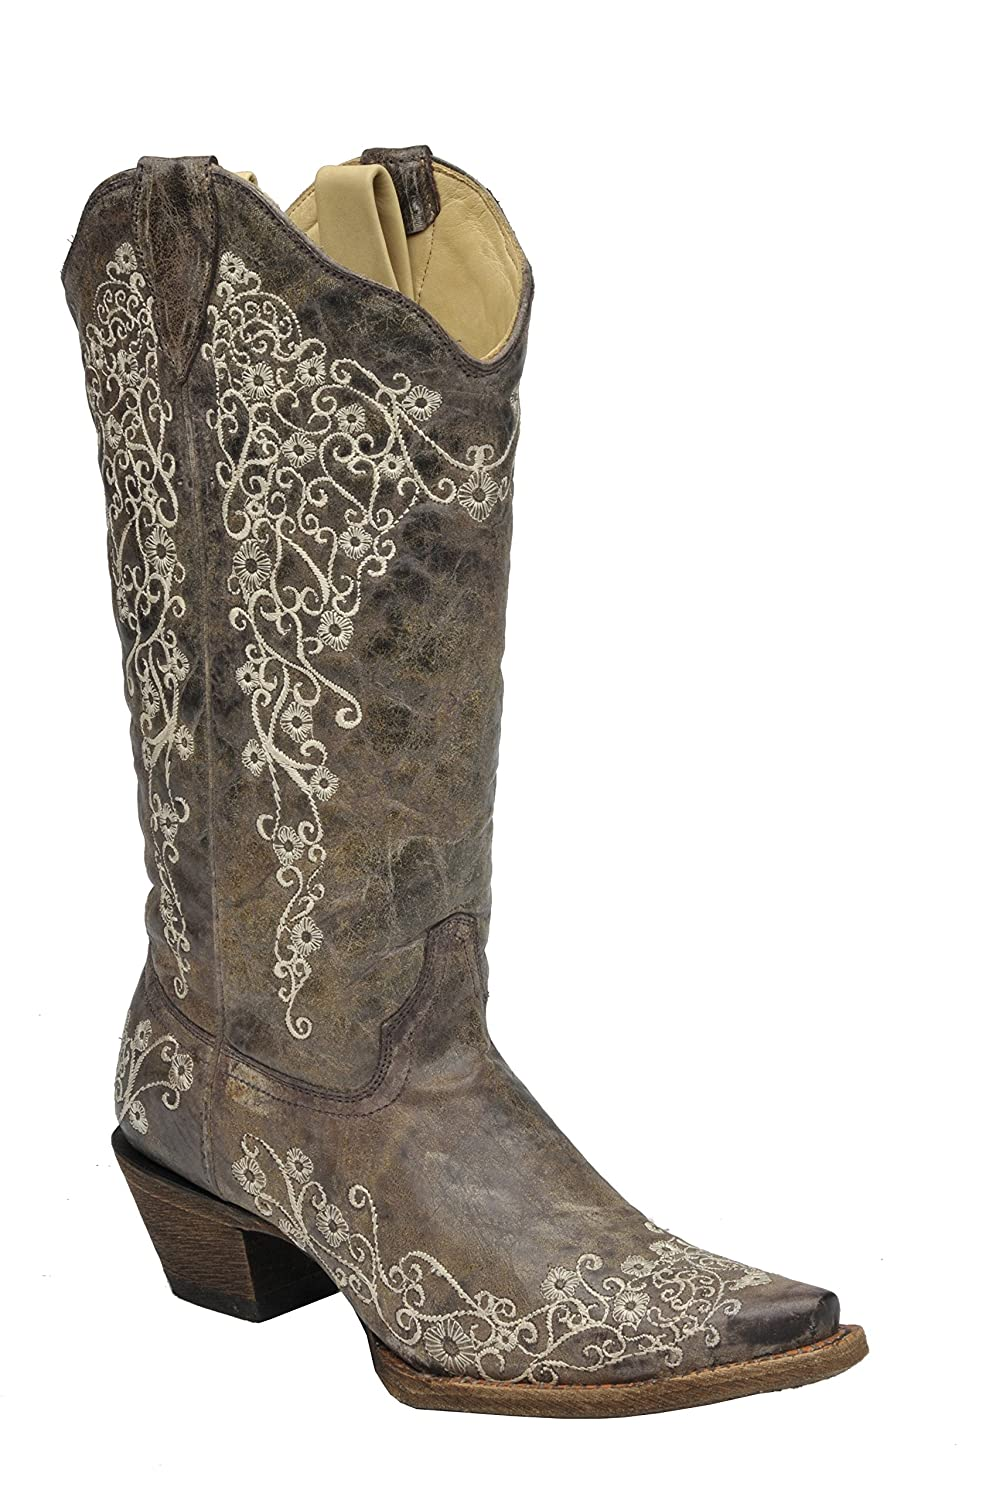 Corral Ladies Brown Crater Bone Embroidery Western Boot B007O28MYS 11 B(M) US|Brown